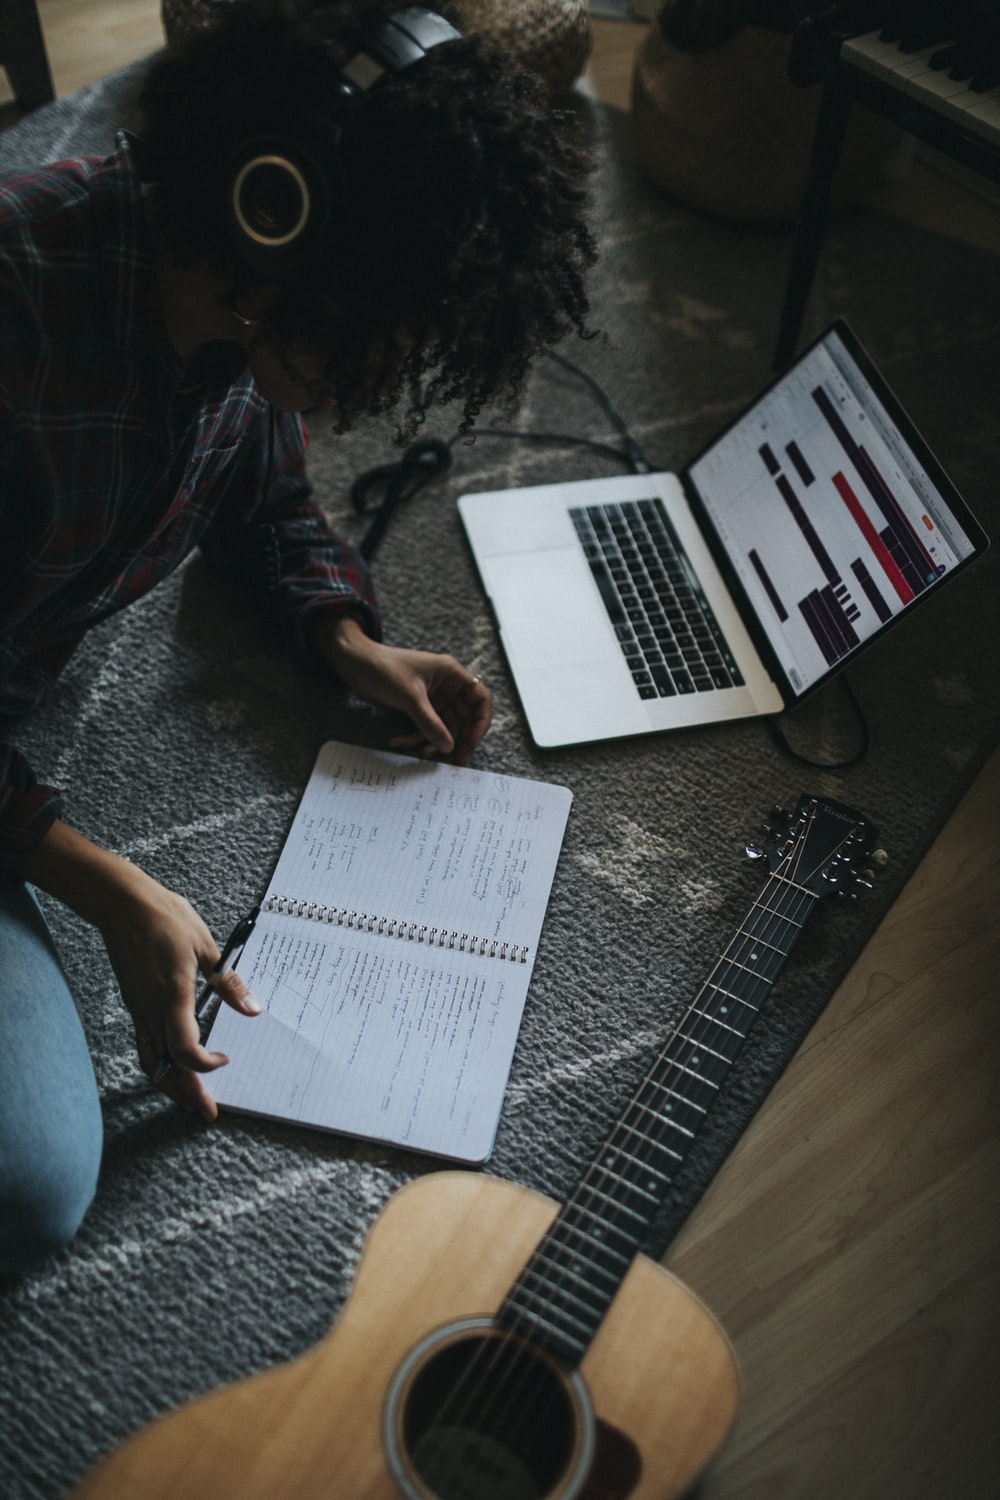 person in black jacket sitting on floor while writing on notebook